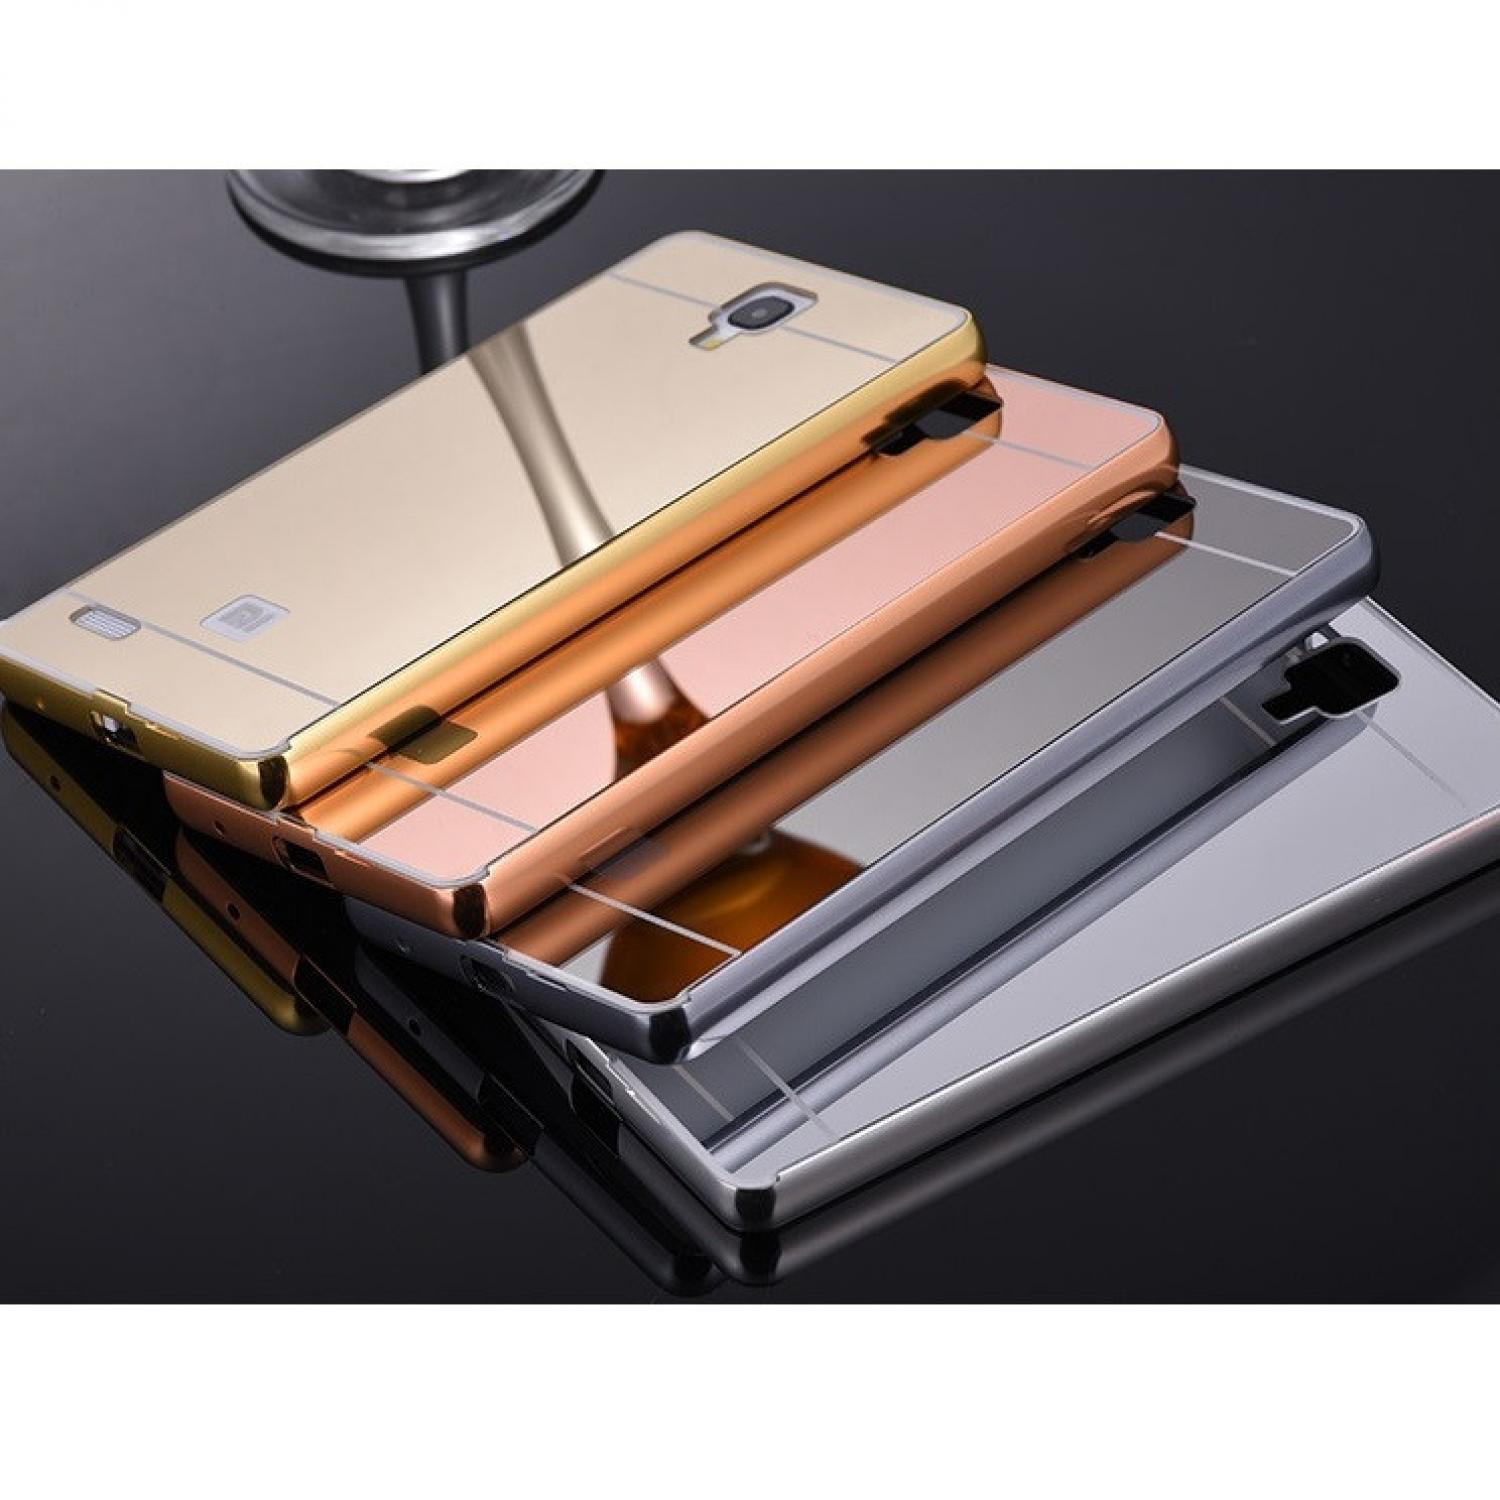 Fitur Aluminium Tempered Glass Hard Case Casing Cover Hp Xiaomi Bumper Mirror Redmi Note 4 Back Hflb Mi 1 3g 4g